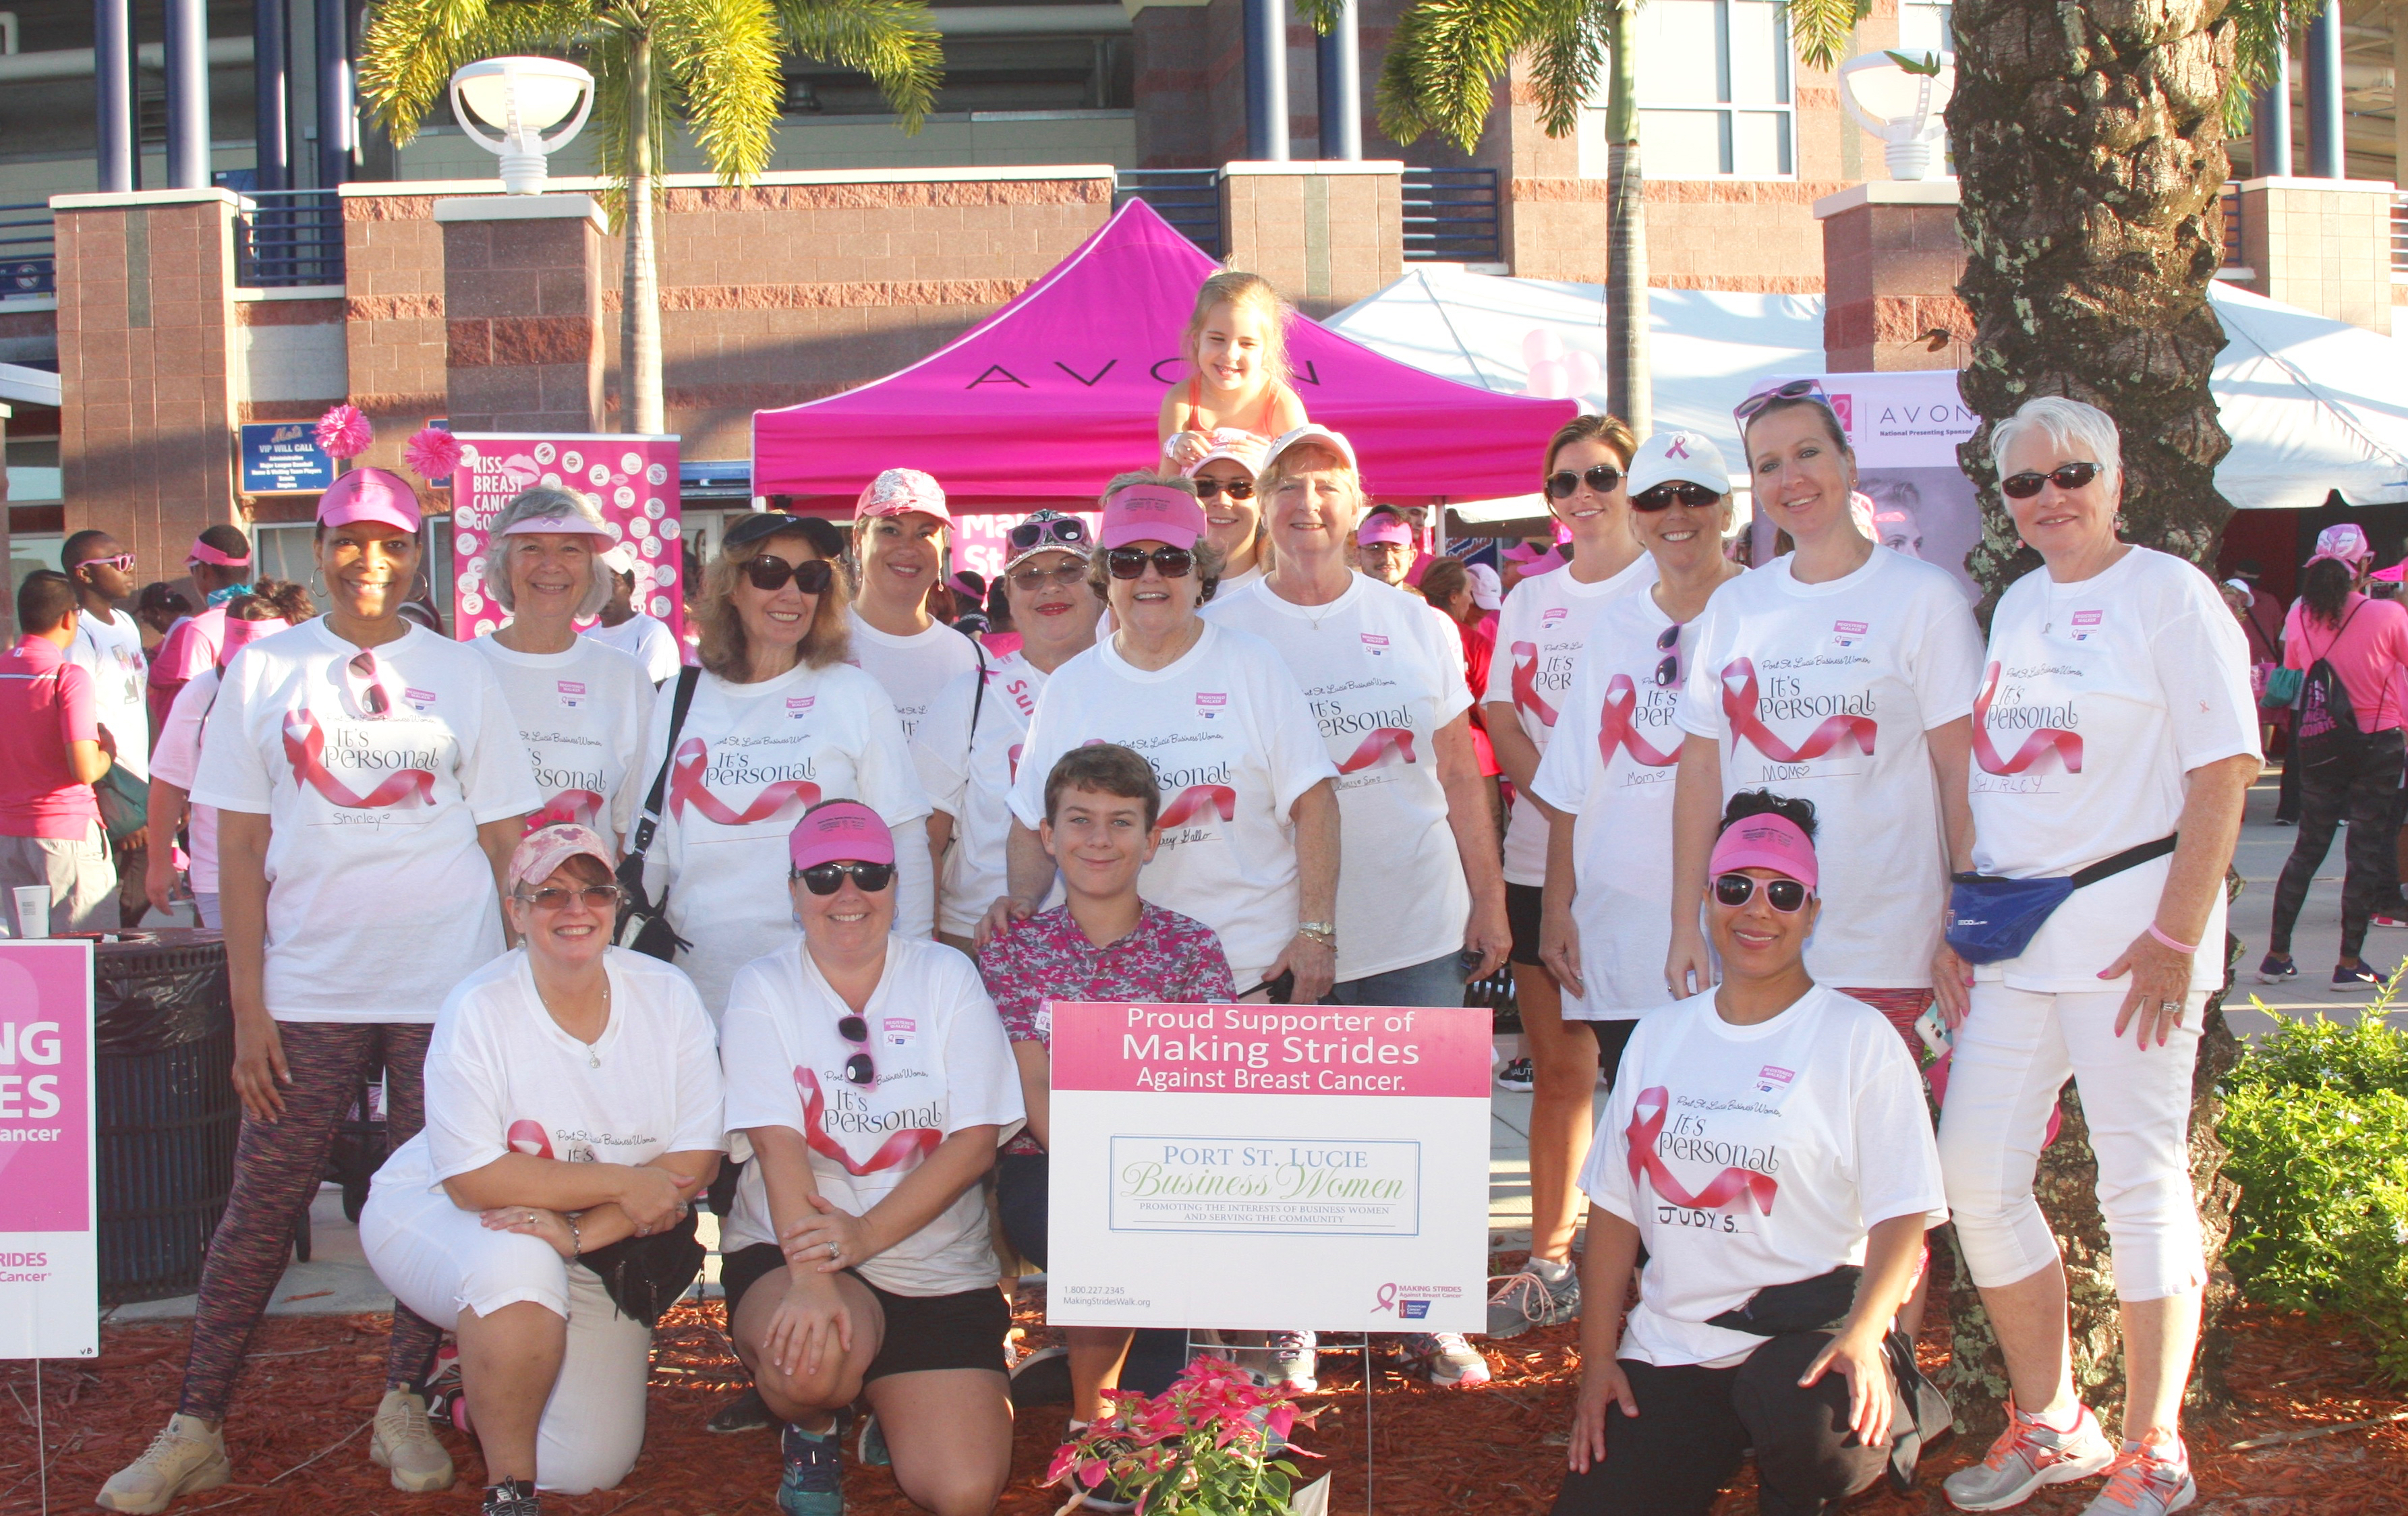 It's Personal: PSL Business Women  Unite To Raise Funds For Breast Cancer Research